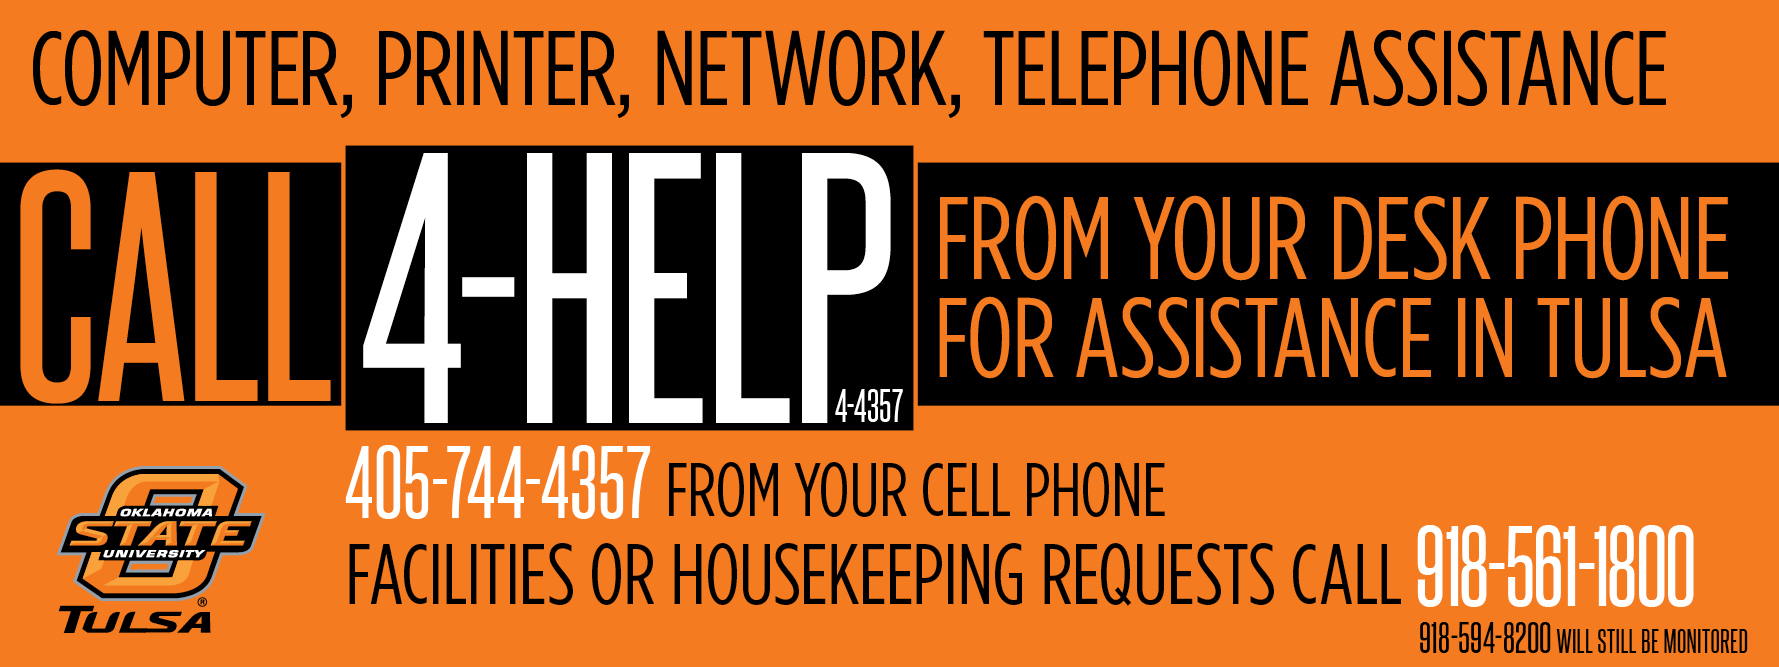 Computer, Printer, Network, Telephone Assistance: Call 4-HELP (4-4357) from your desk phone for assistance in Tulsa. Dial 405-744-4357 from your cell phone. Facilities or housekeeping requests call 918-561-1800. 918-594-8200 will still be monitored.